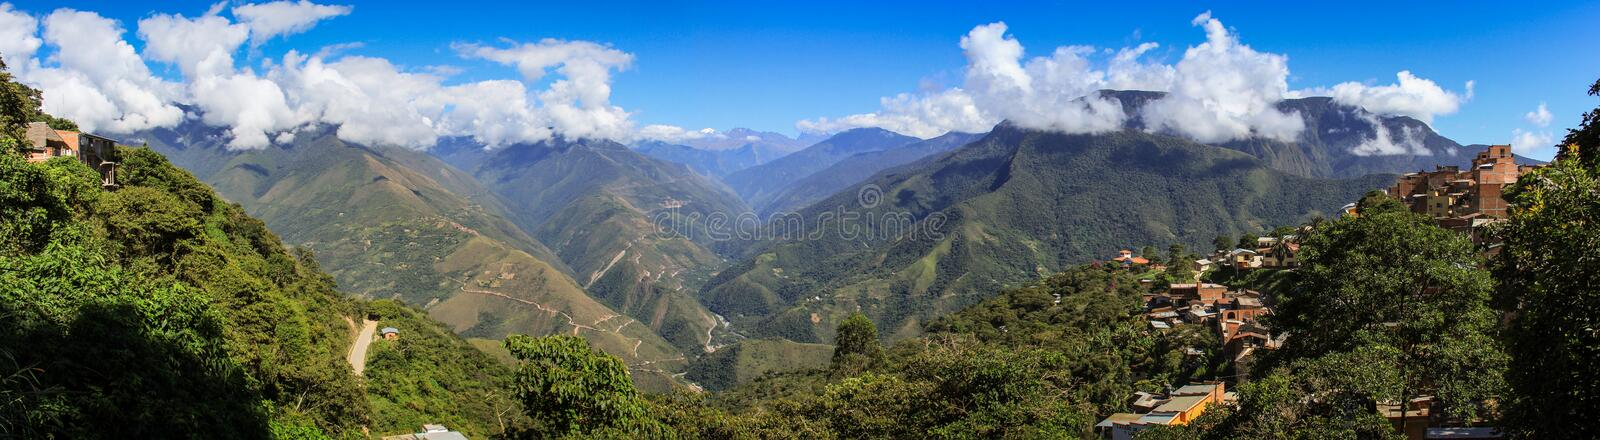 Panoramic View from Coroico, Yungas, Bolivia royalty free stock images